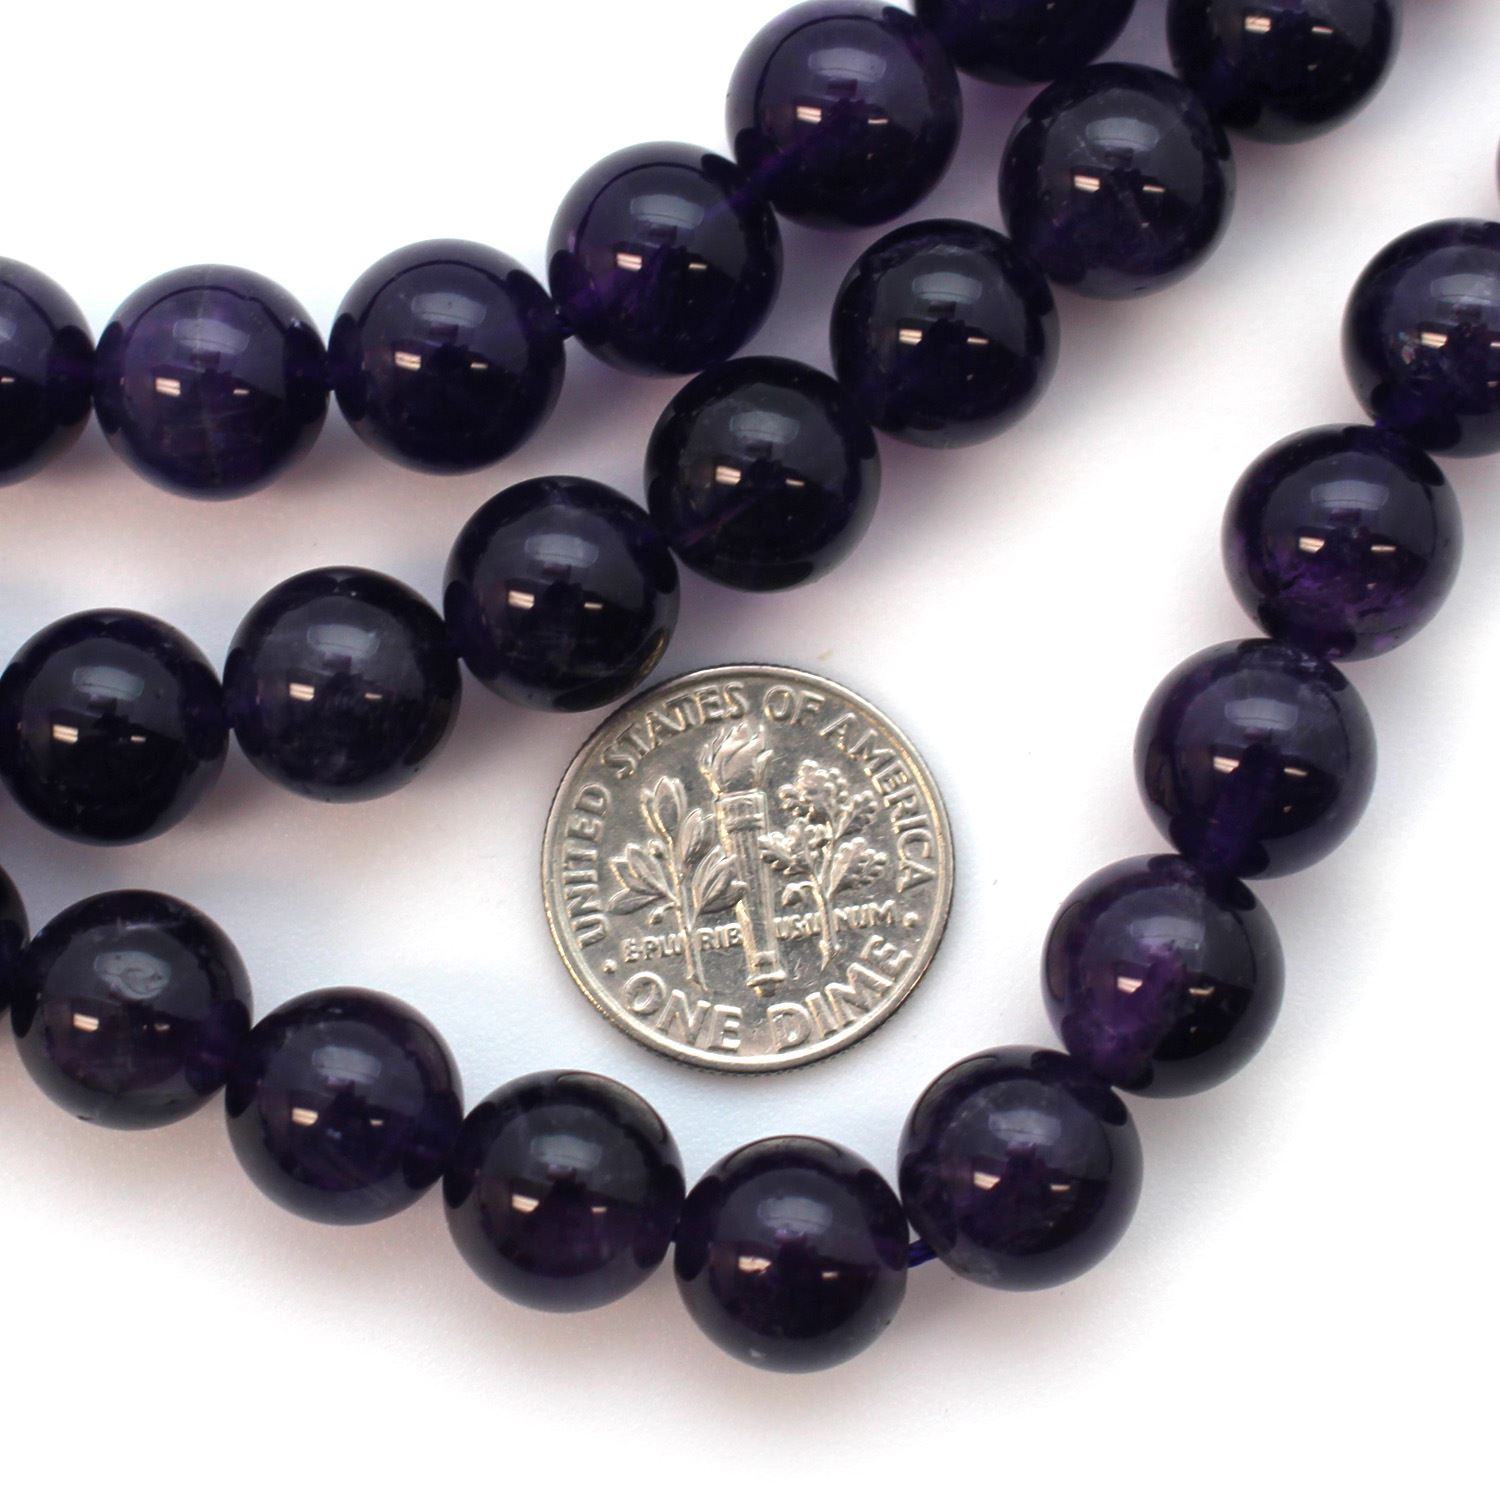 Smooth Round Amethyst Beads - 10mm (Sold Per Strand)